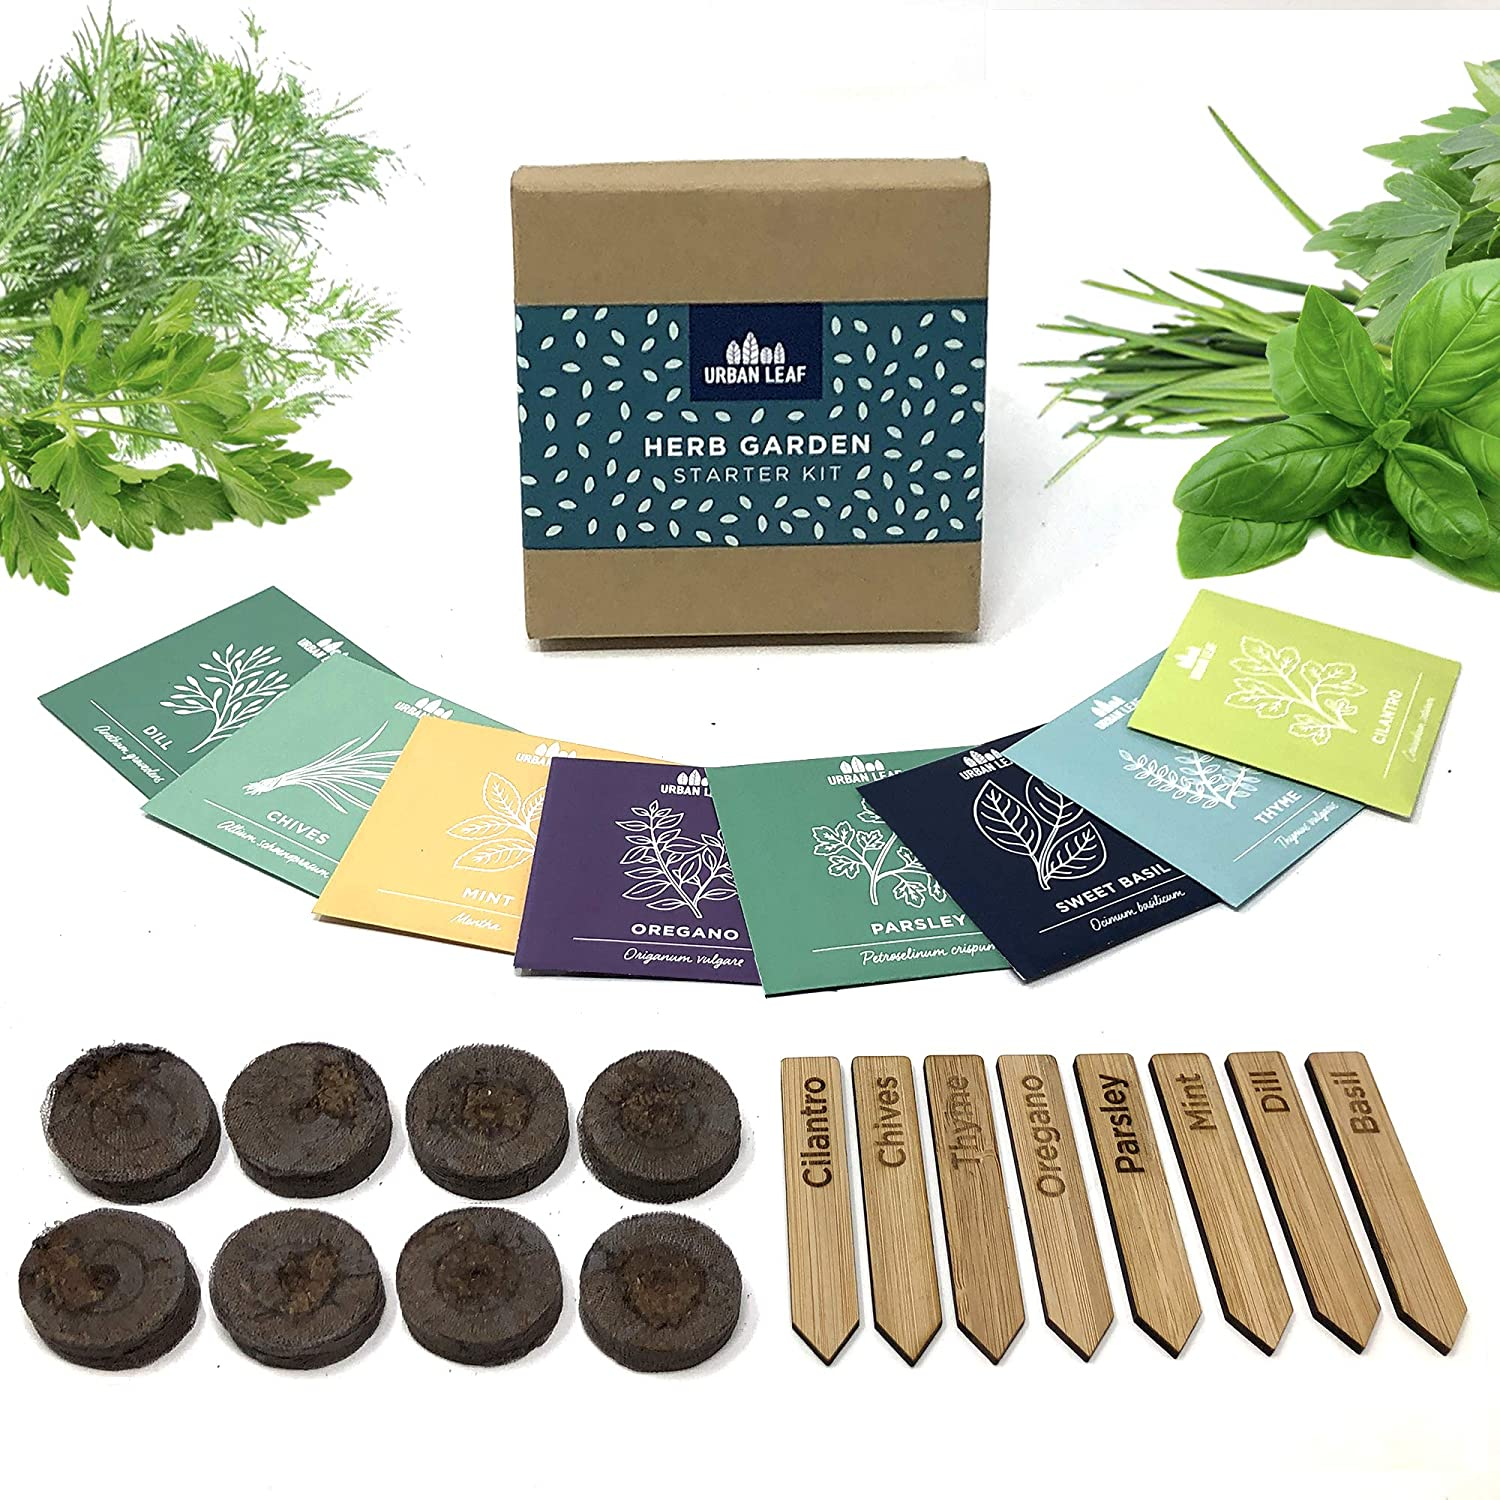 Indoor Herb Garden Starter Kit - Soil Starter Discs, Compact Herb Seed Varieties, Bamboo Labels and Detailed Instructions - DIY Kitchen Grow Kit for Growing Herb Seeds Indoors